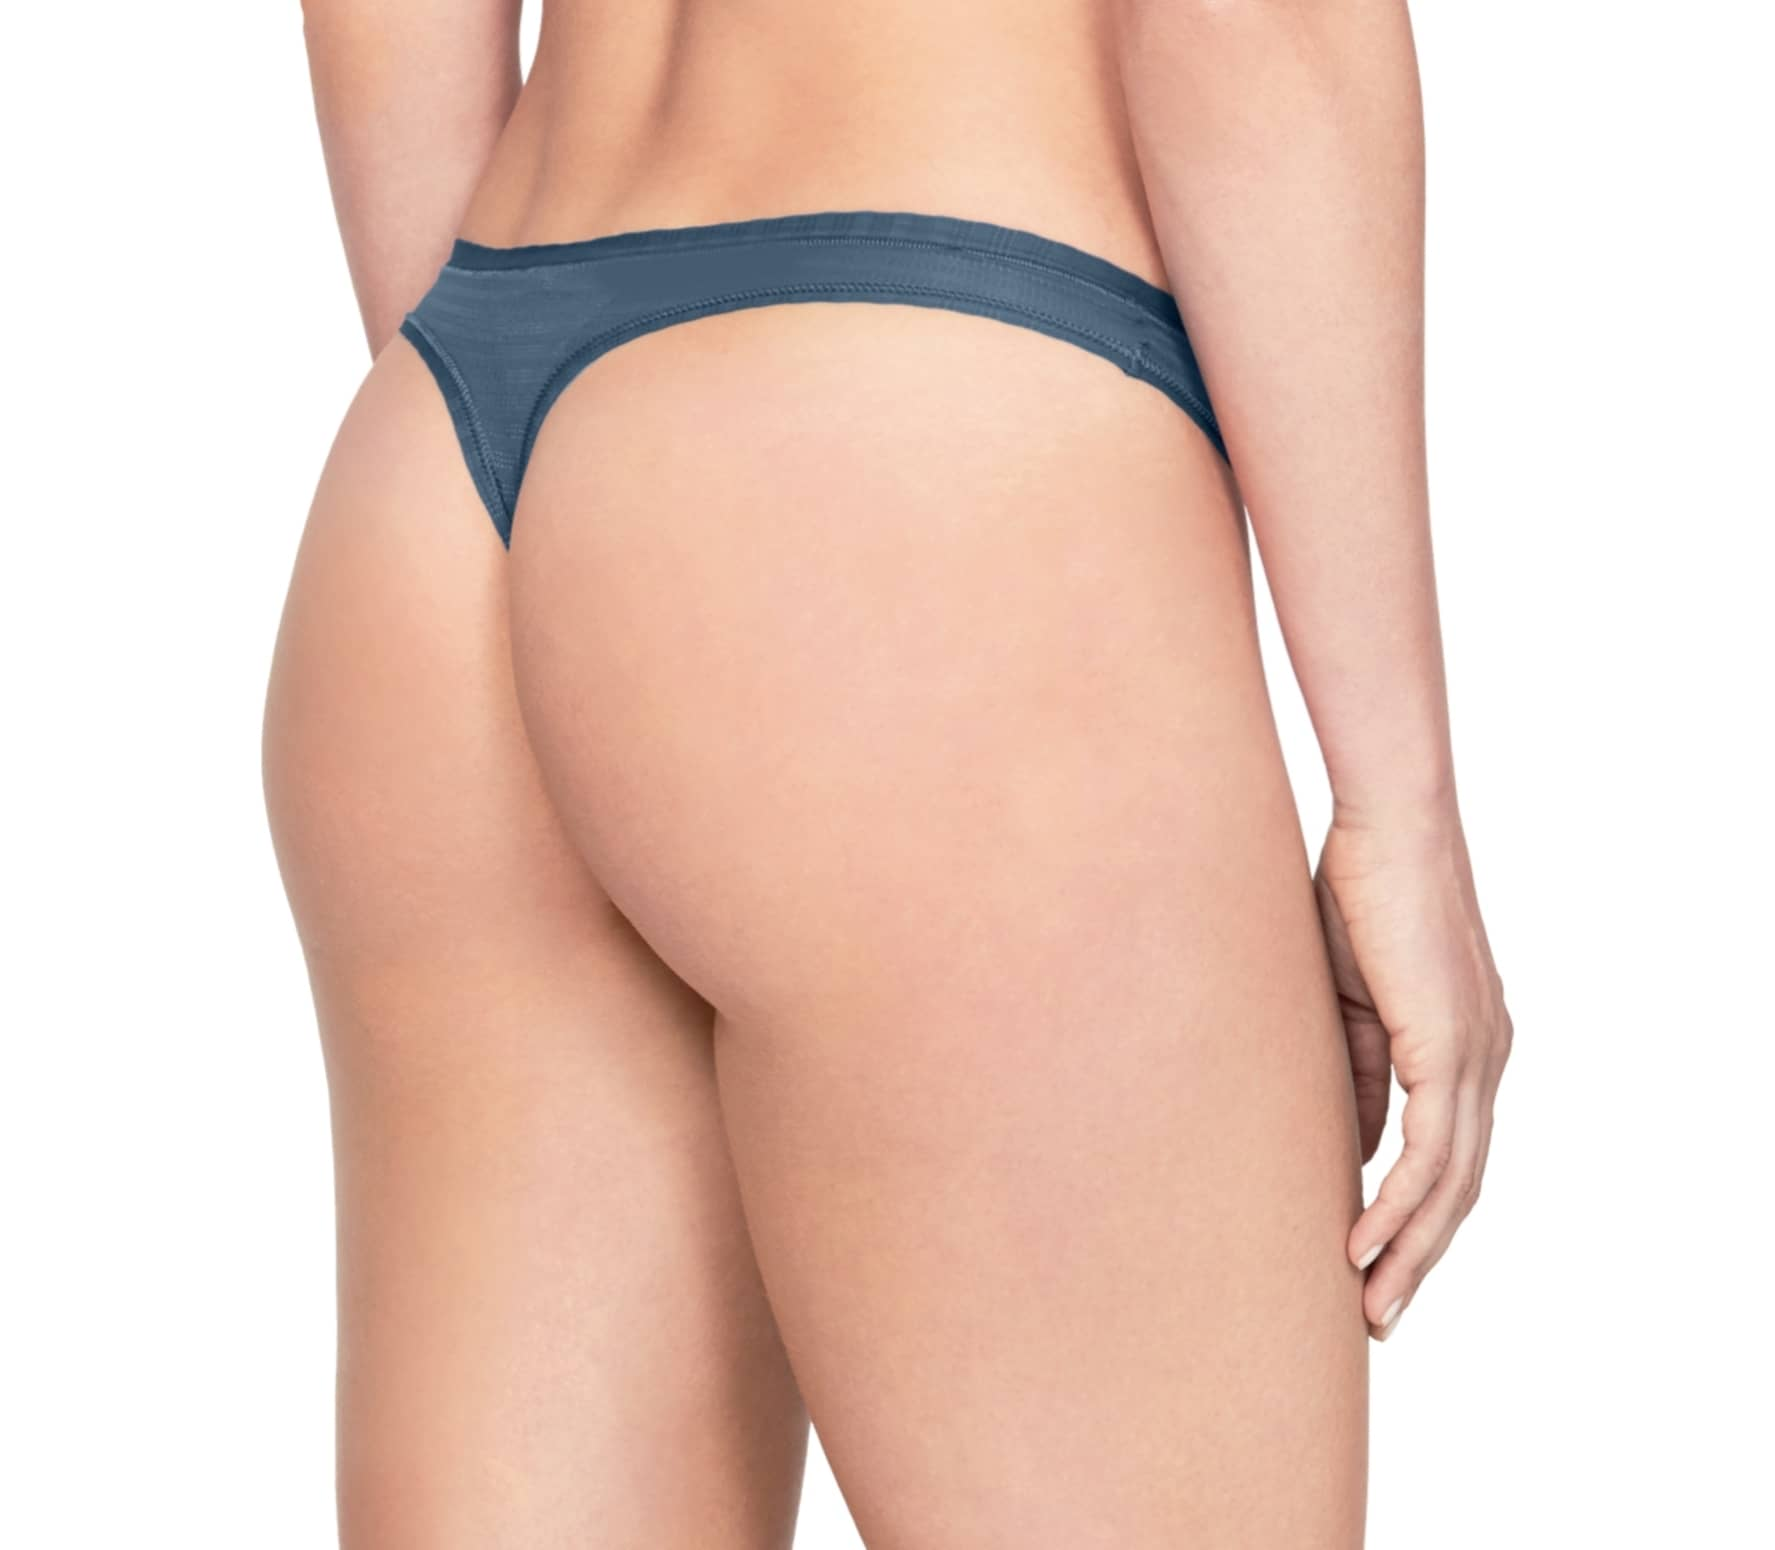 Under Armour - Sheers Thong Novelty women s underwear (blue) - buy ... 592ed543a